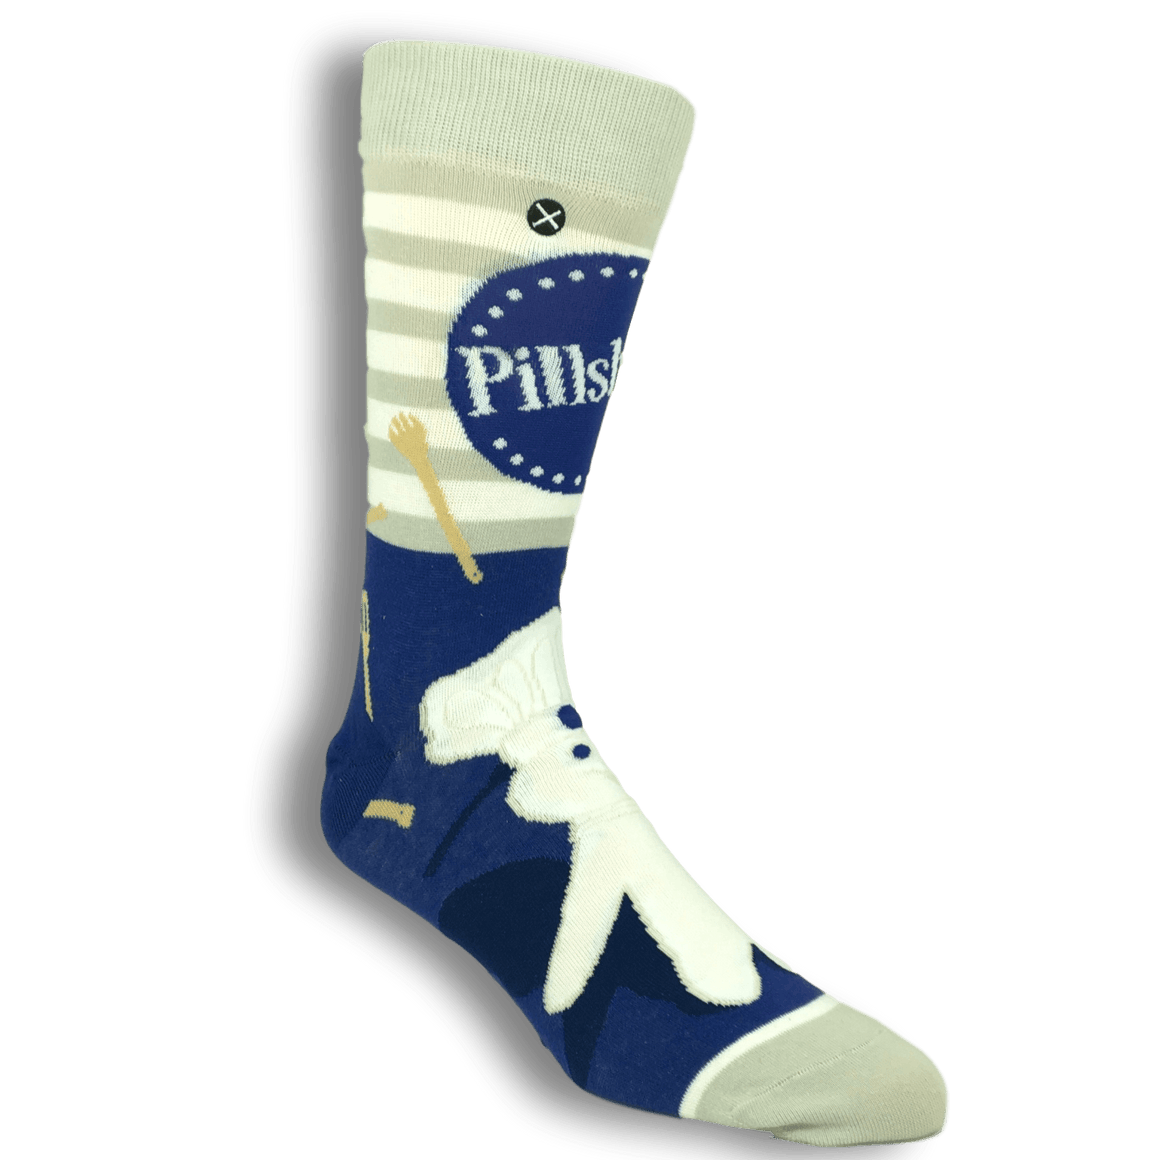 Pillsbury Doughboy Socks by Odd Sox - The Sock Spot